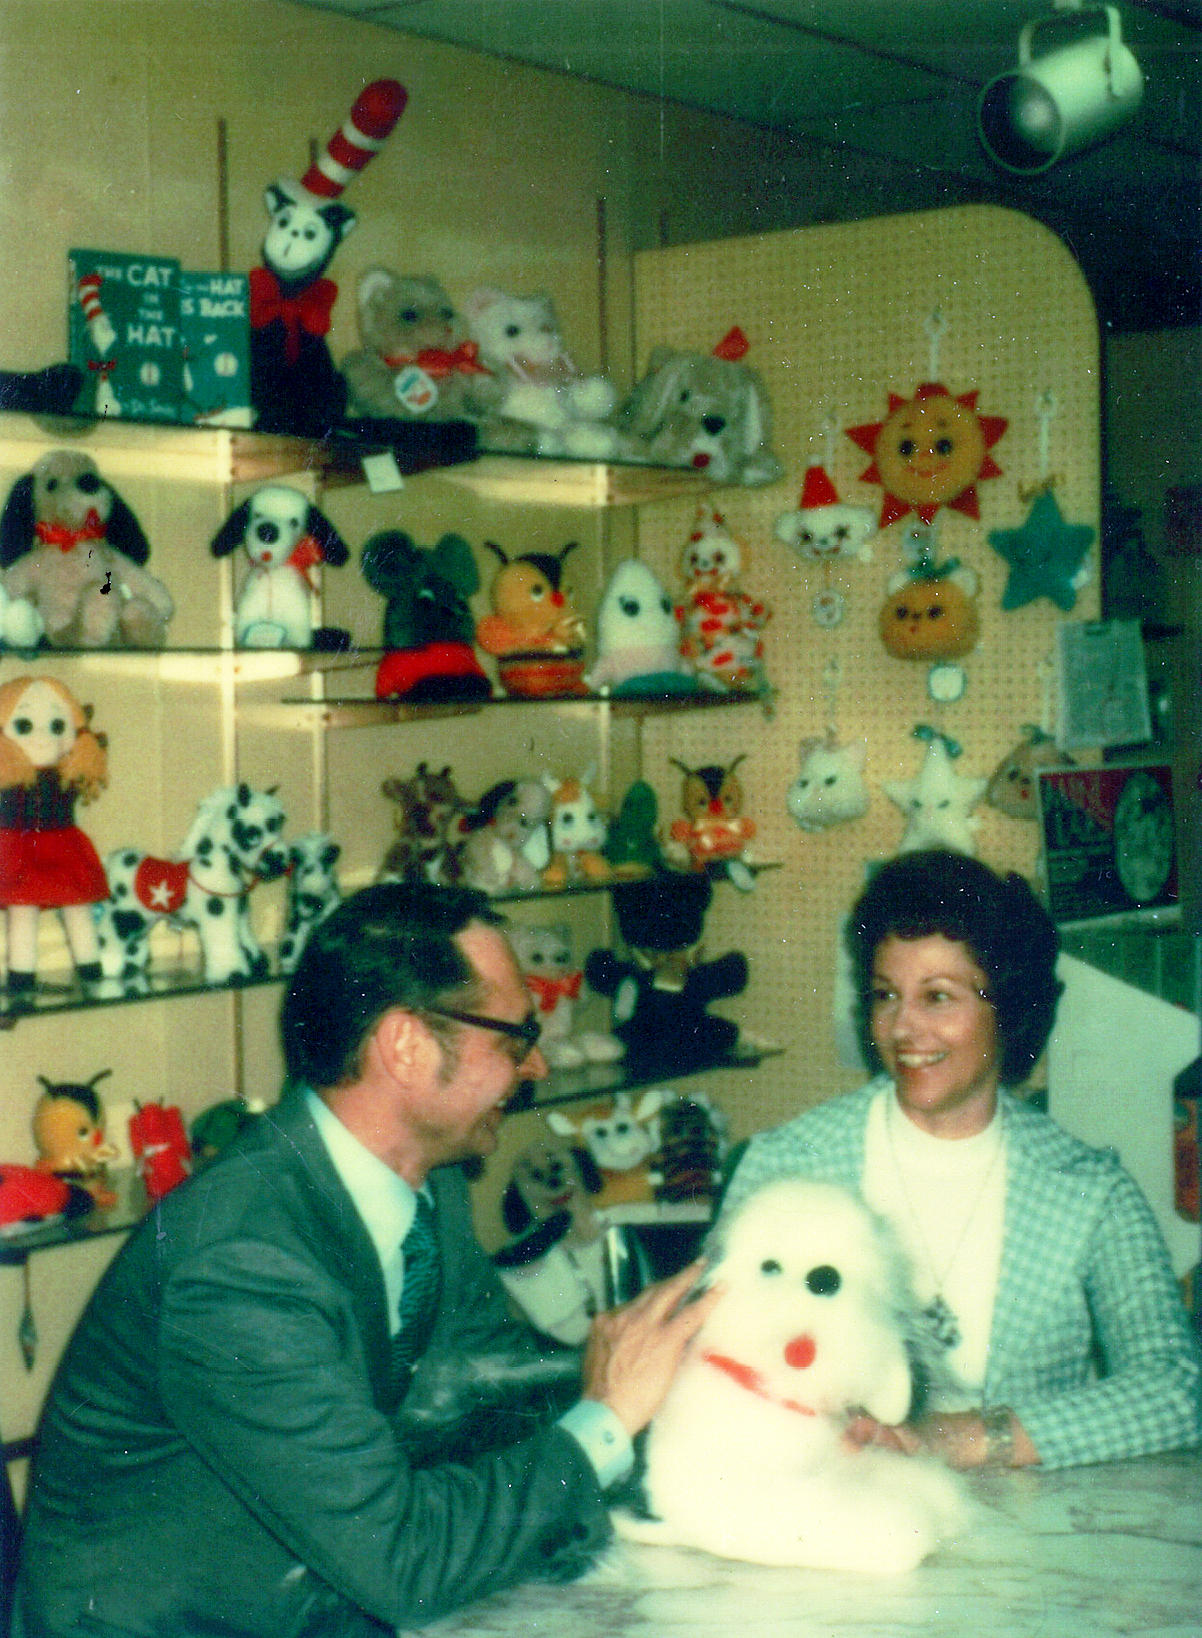 a1247eef84b The Hard Economics of Making Plush Toys in New Hampshire